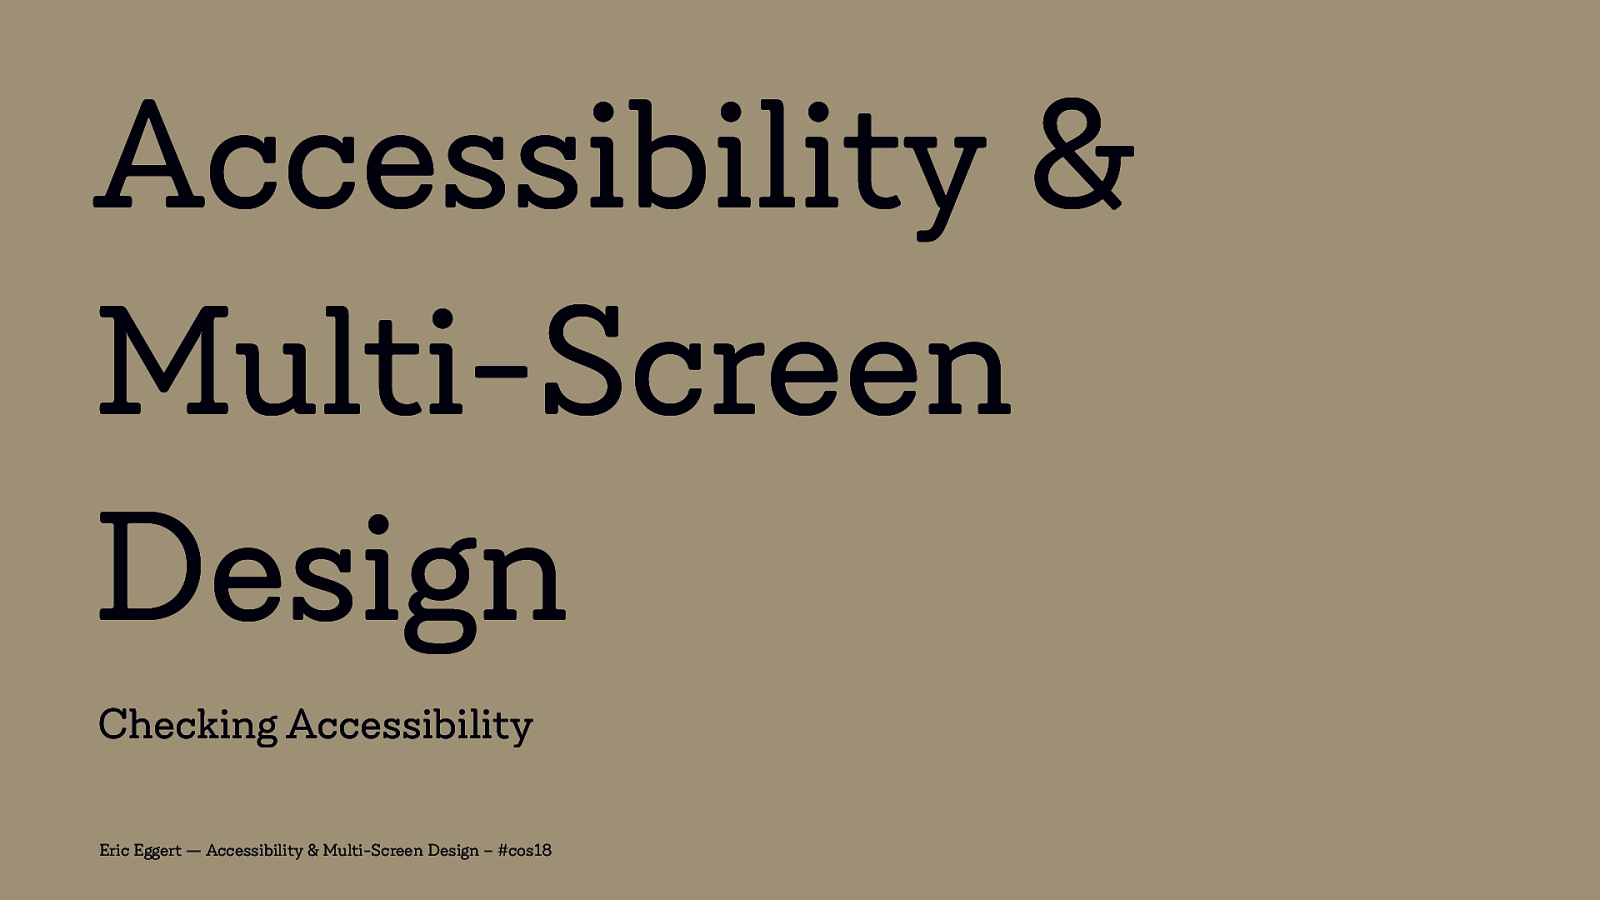 Accessibility & Multi-Screen Design: Checking Accessibility